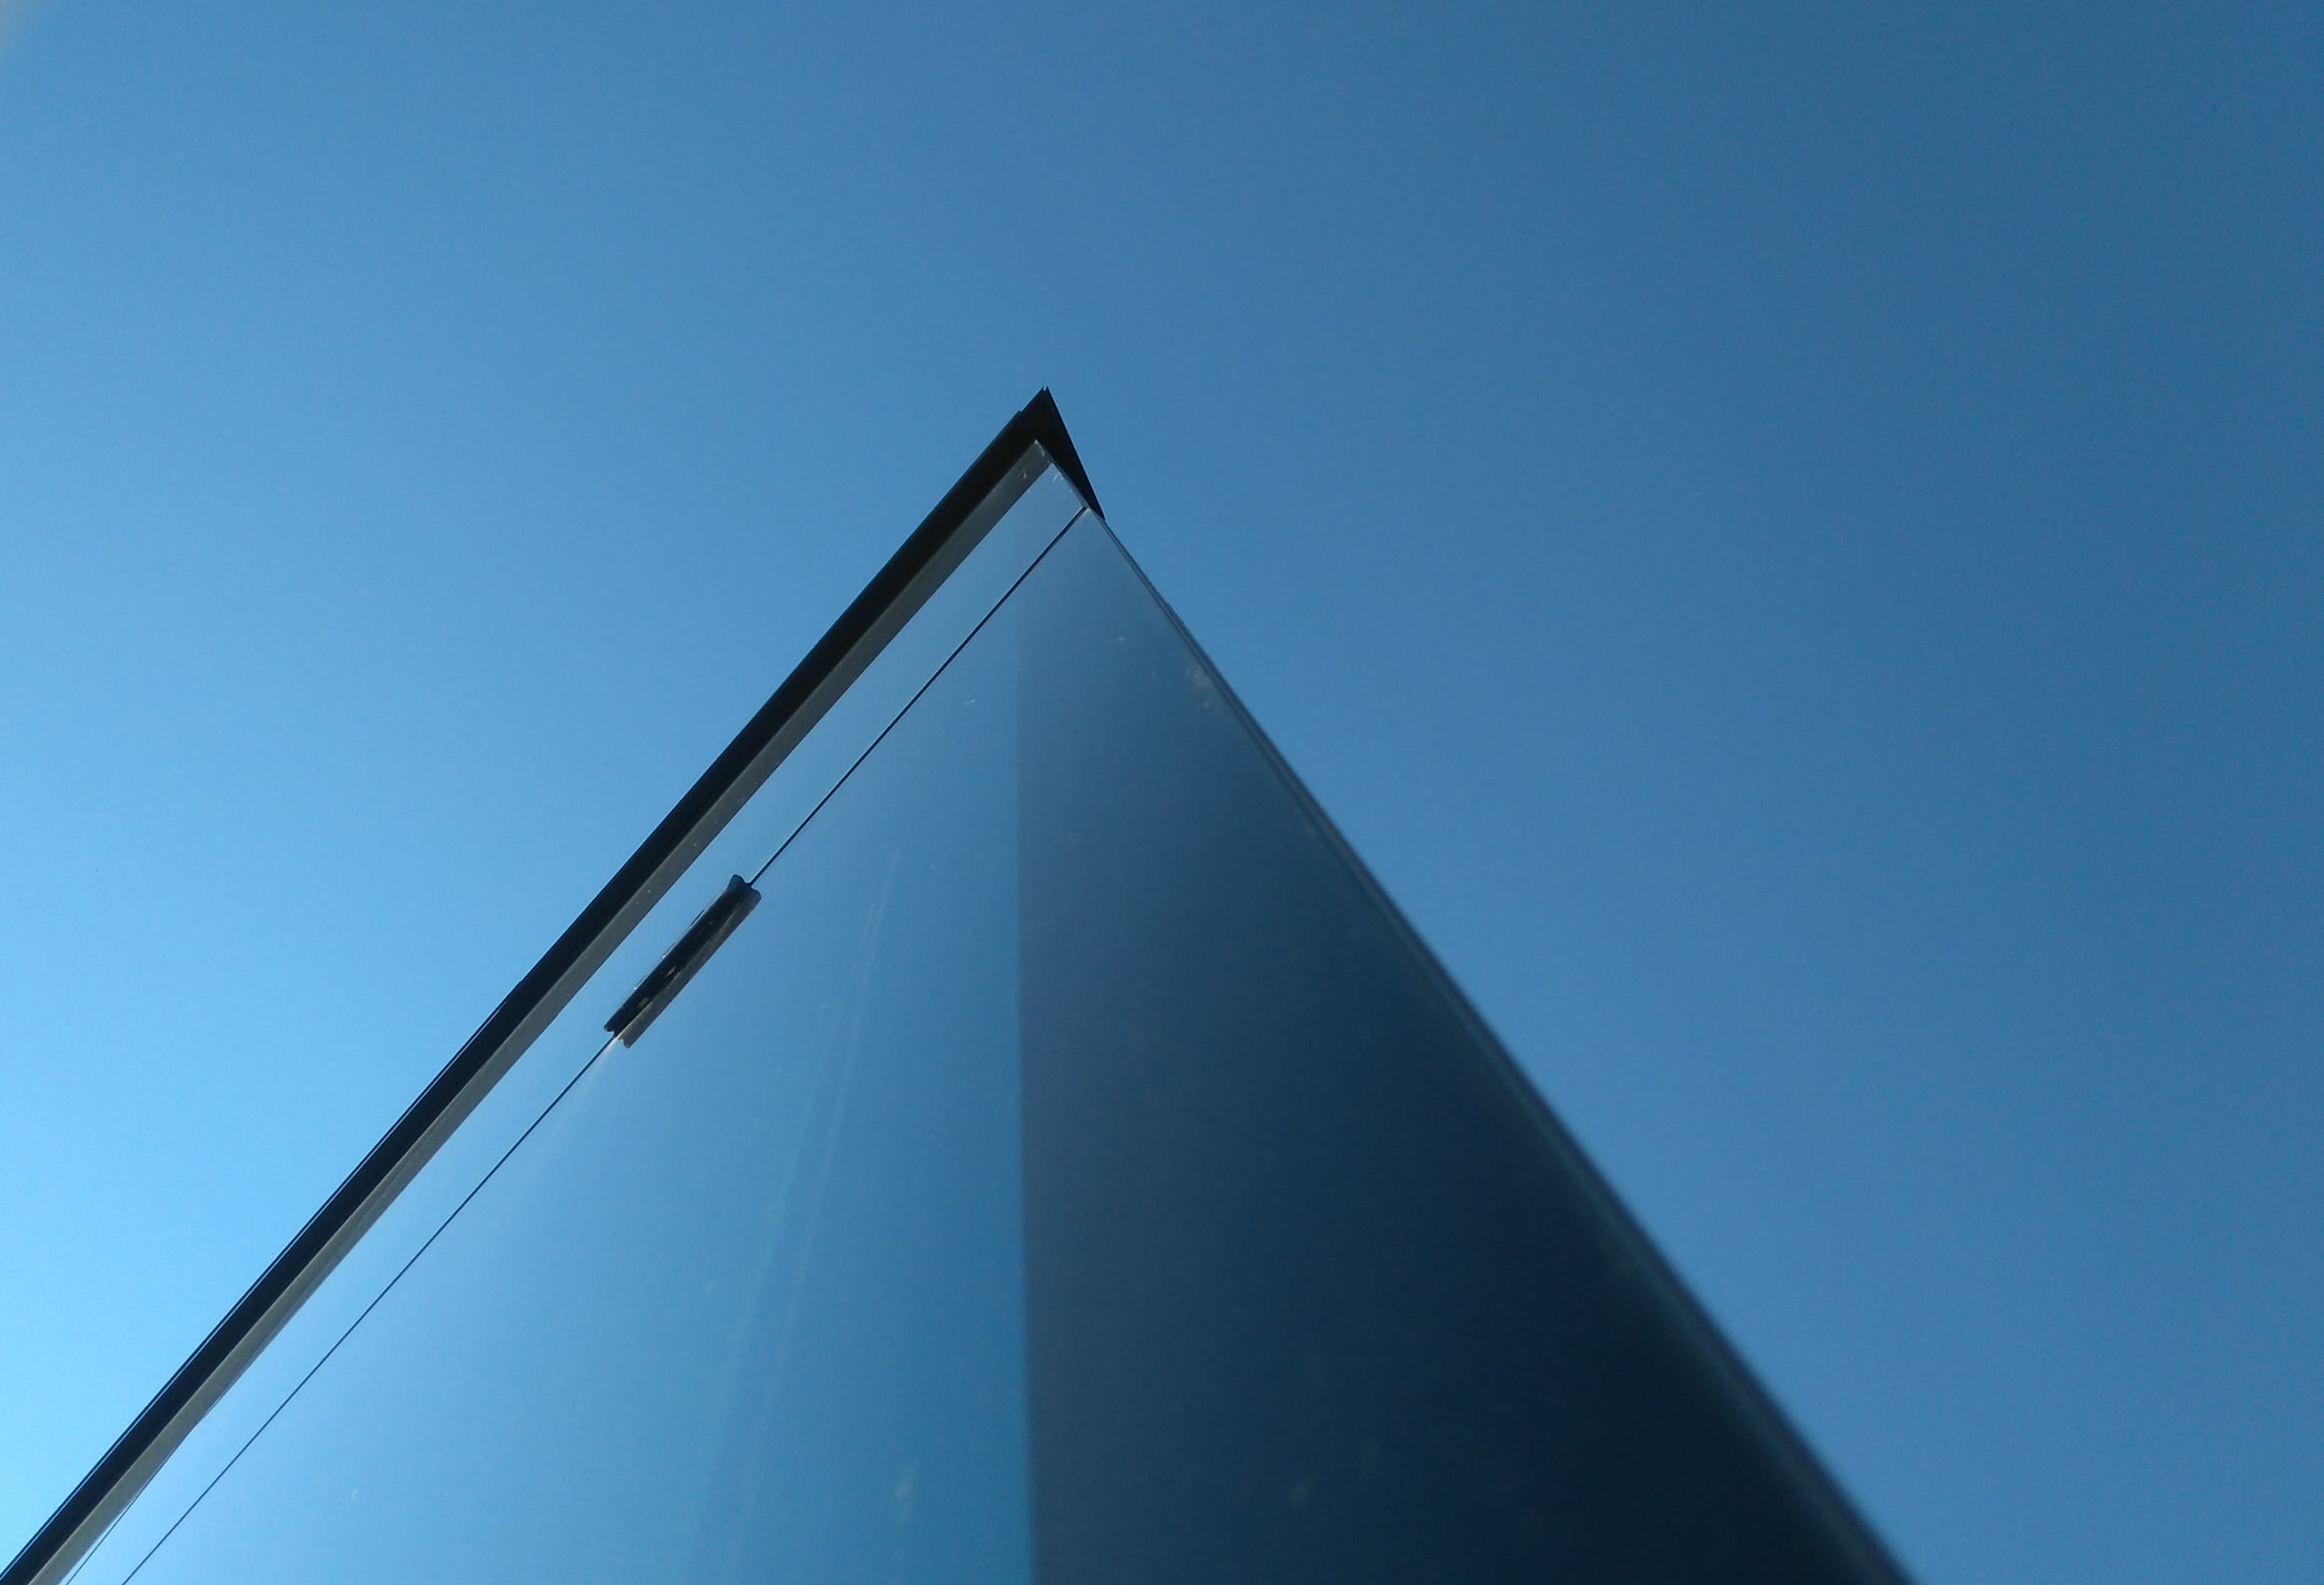 Low-angle Photography of Laminated Glass Building